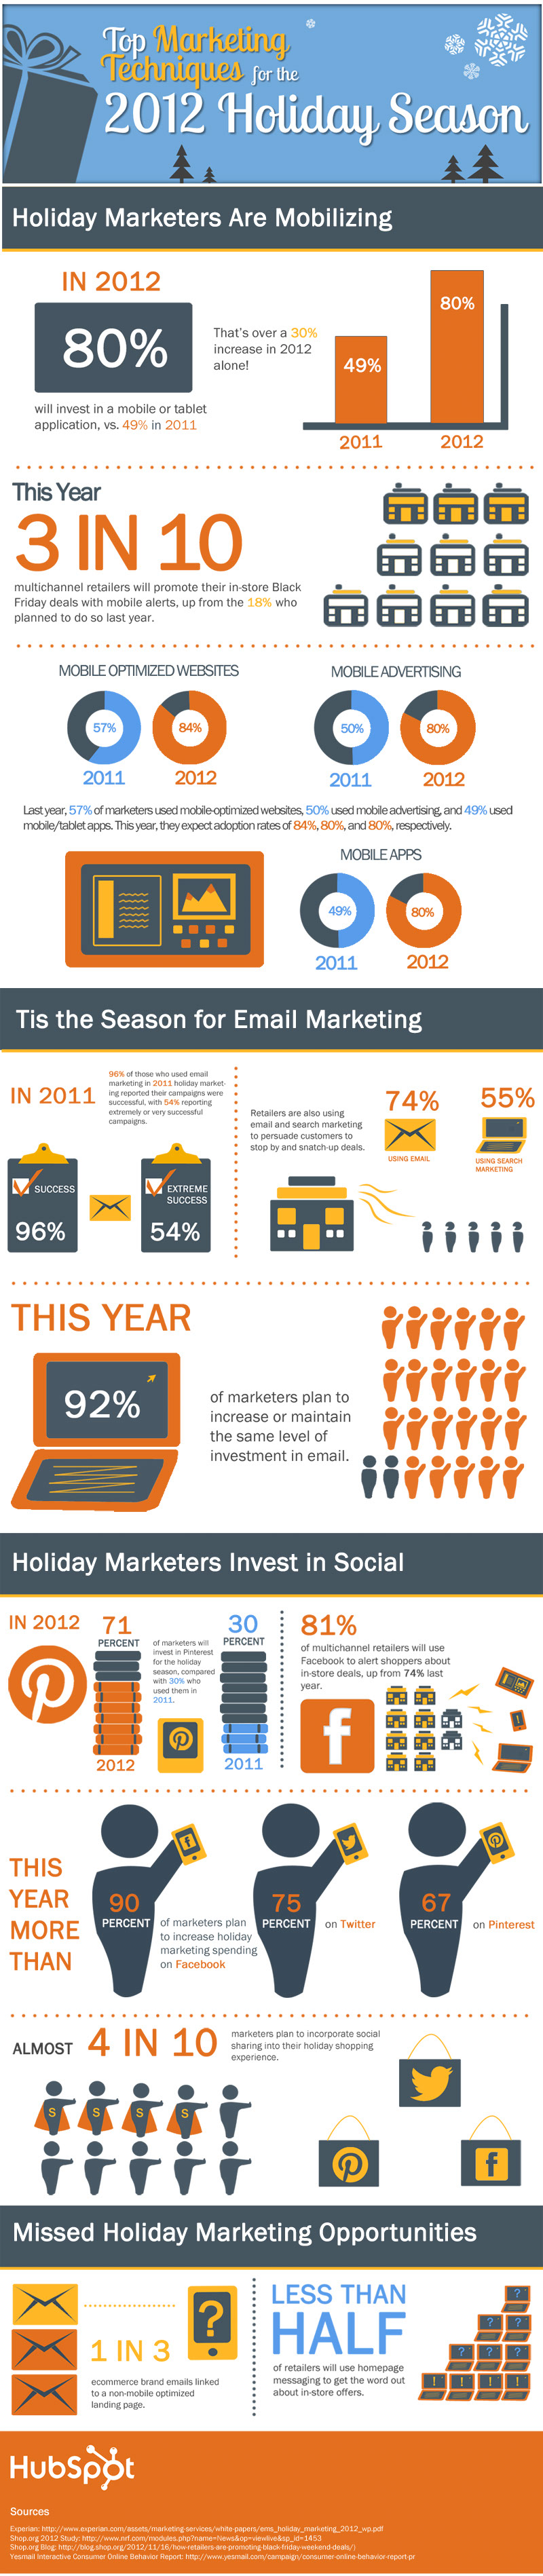 Christmas Marketing Trends 2012-Infographic